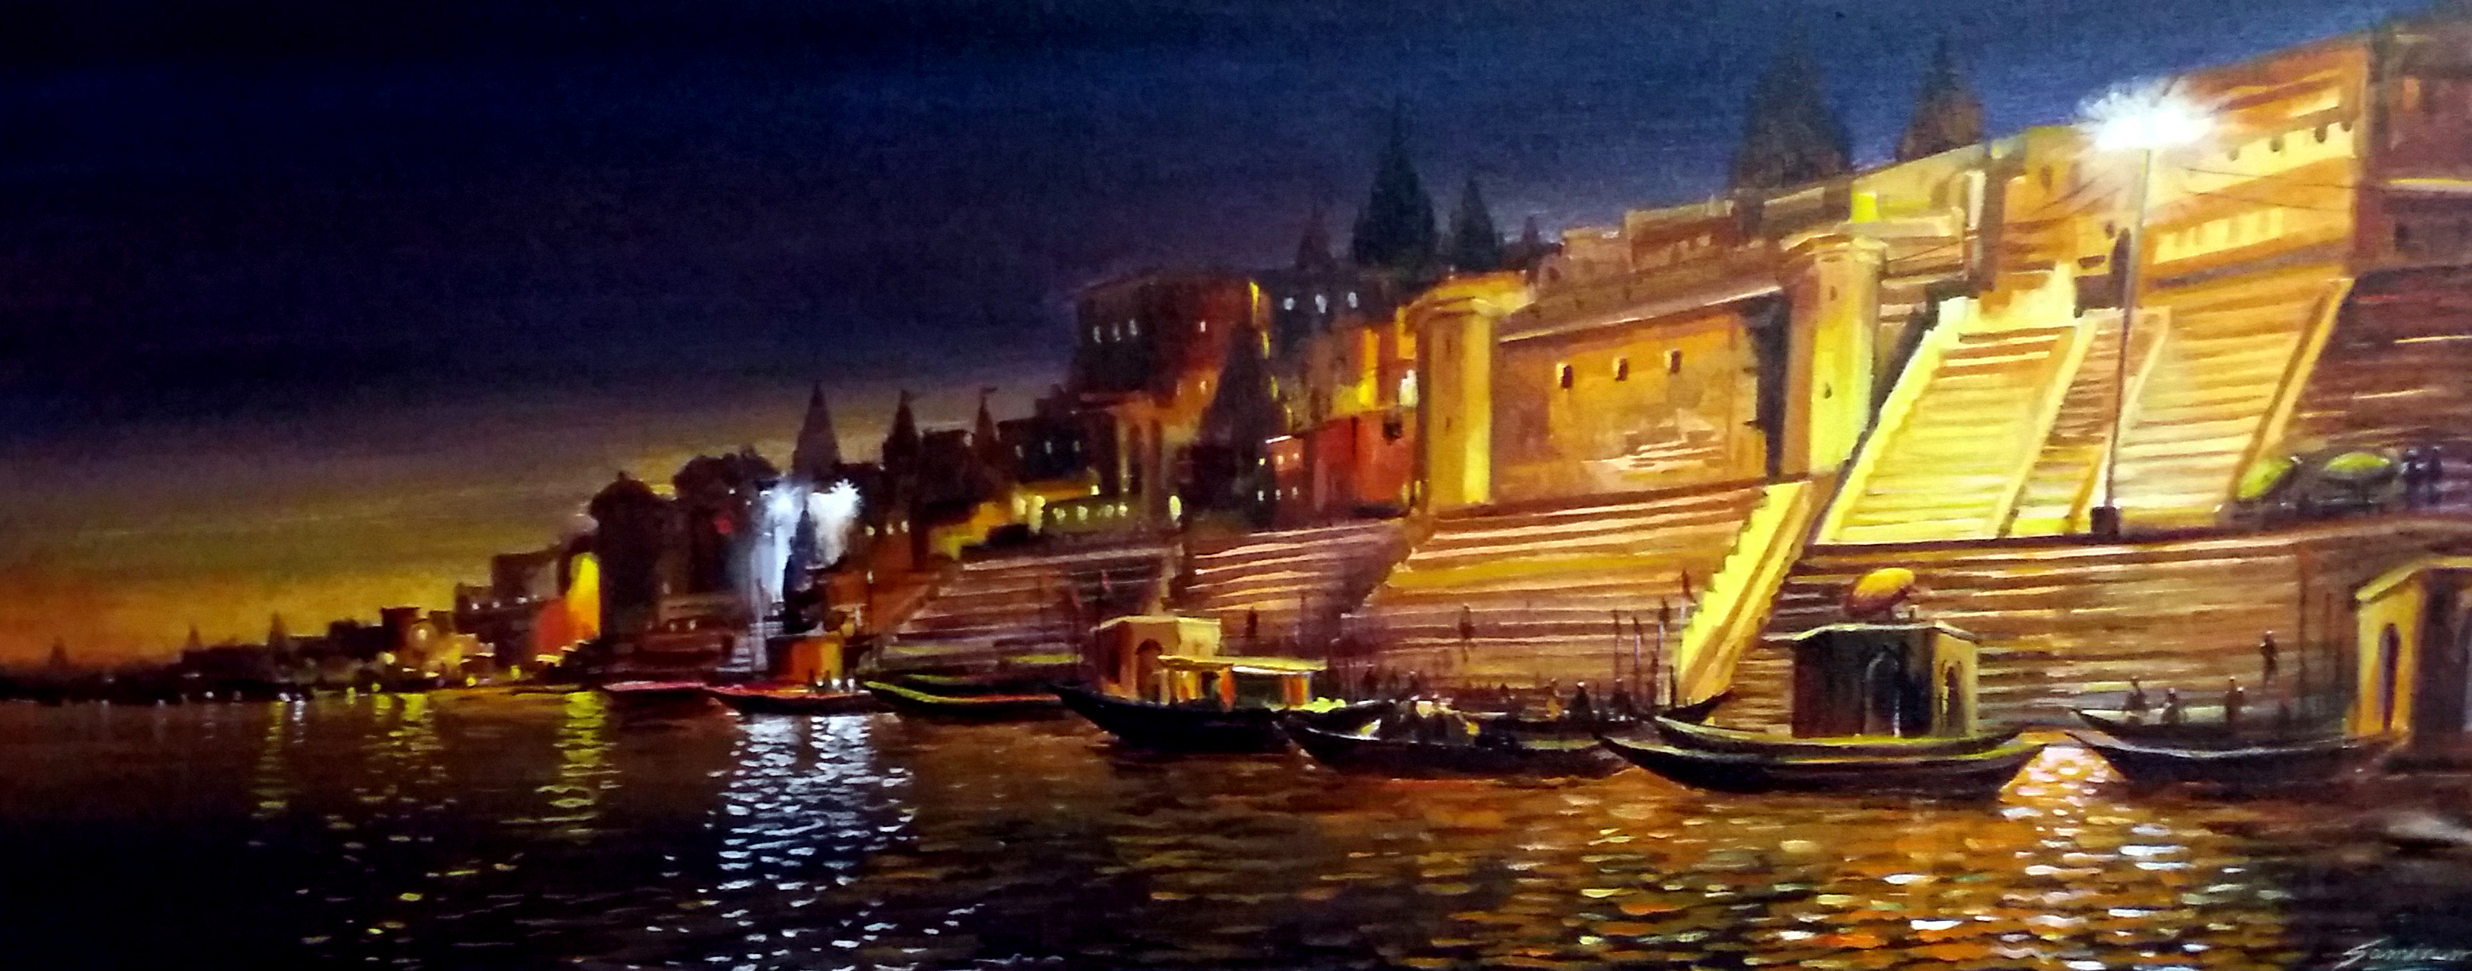 Night Varansi Ghat 11739